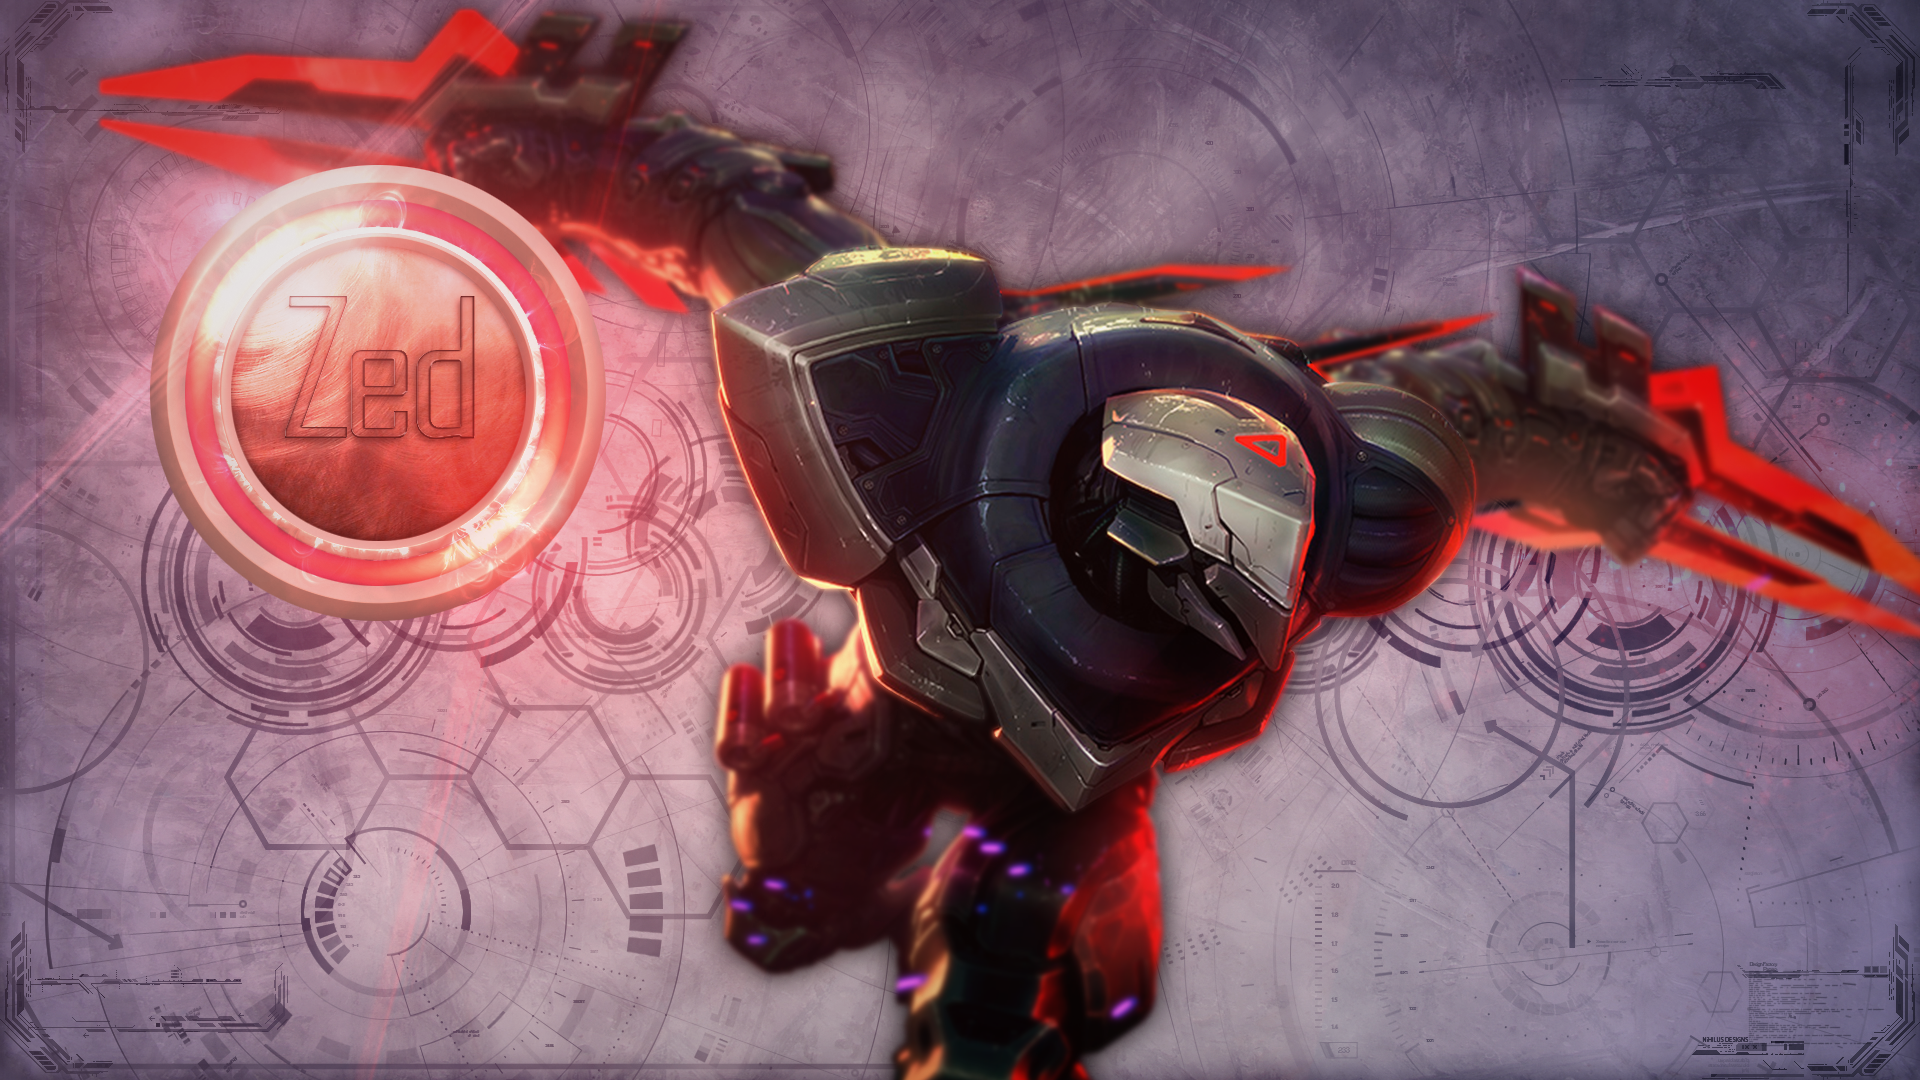 Project Zed Lolwallpapers